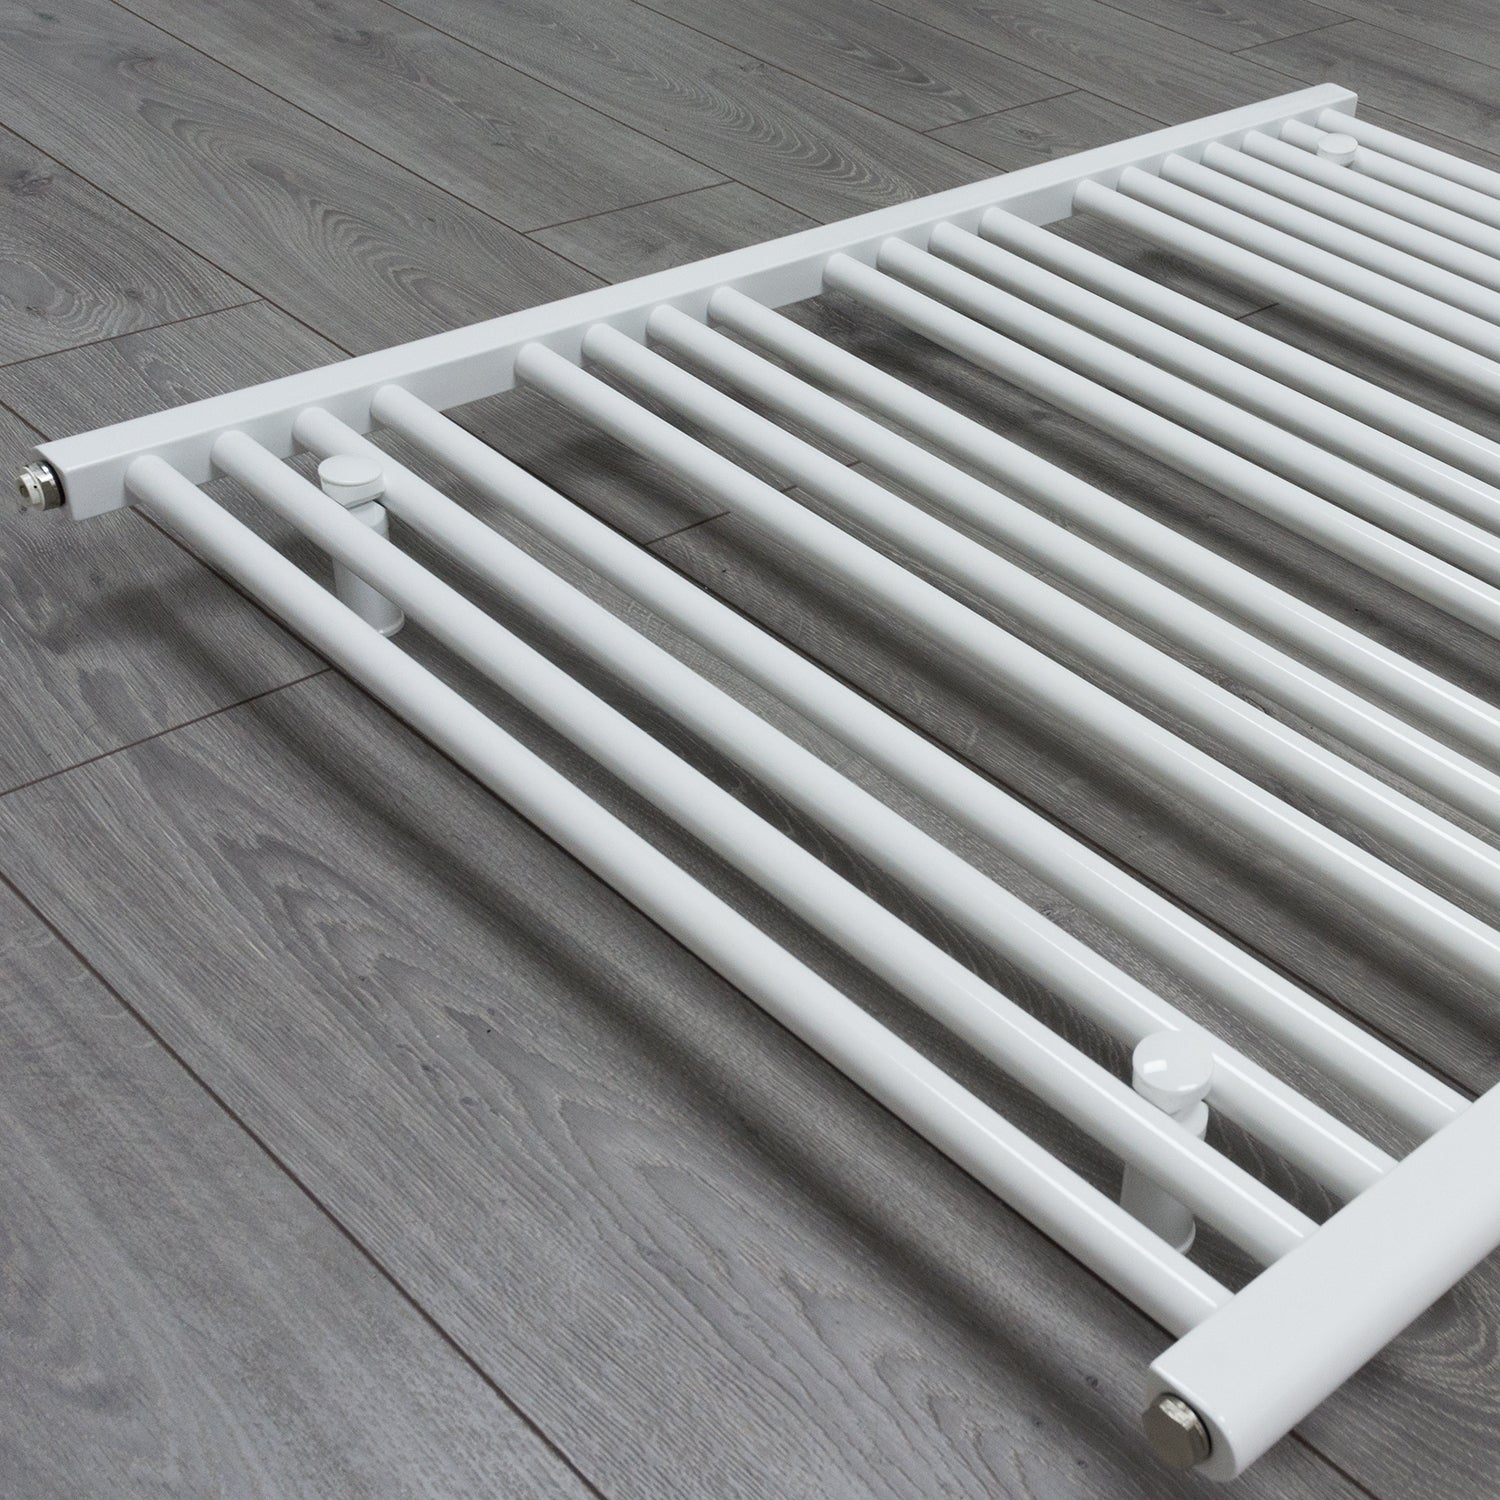 750mm x 1400mm White Heated Towel Rail Radiator Close Up Image